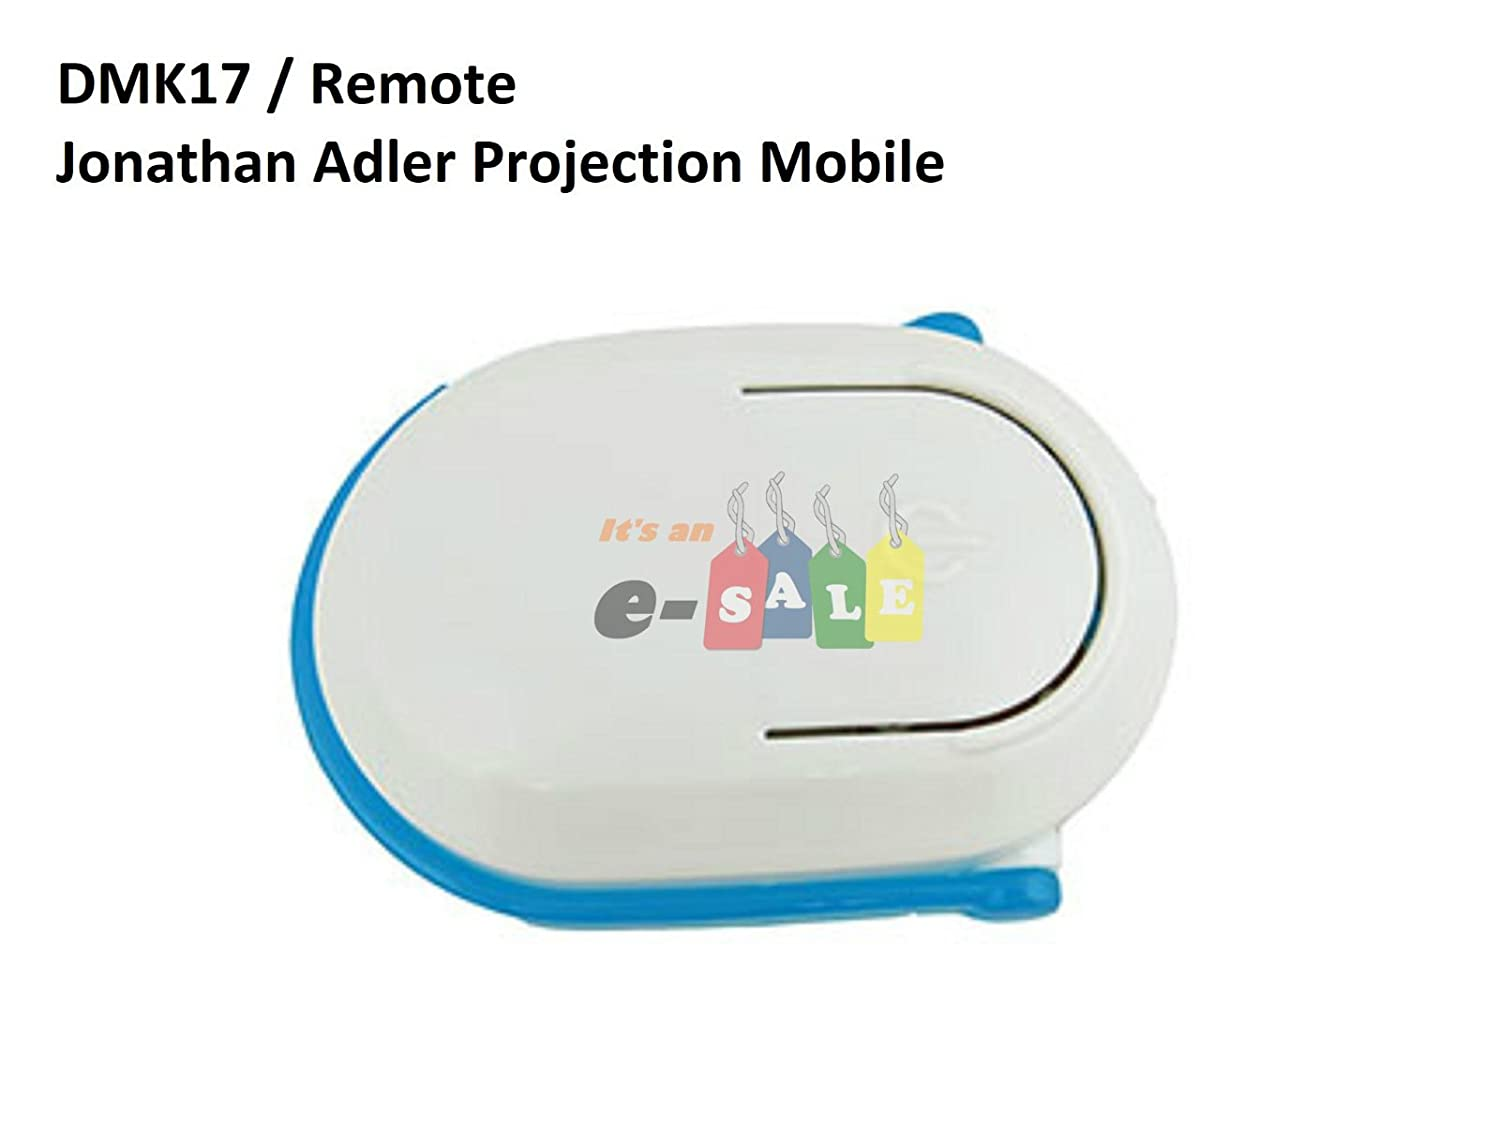 Fisher-Price Jonathan Adler Projection Mobile - Replacement Remote